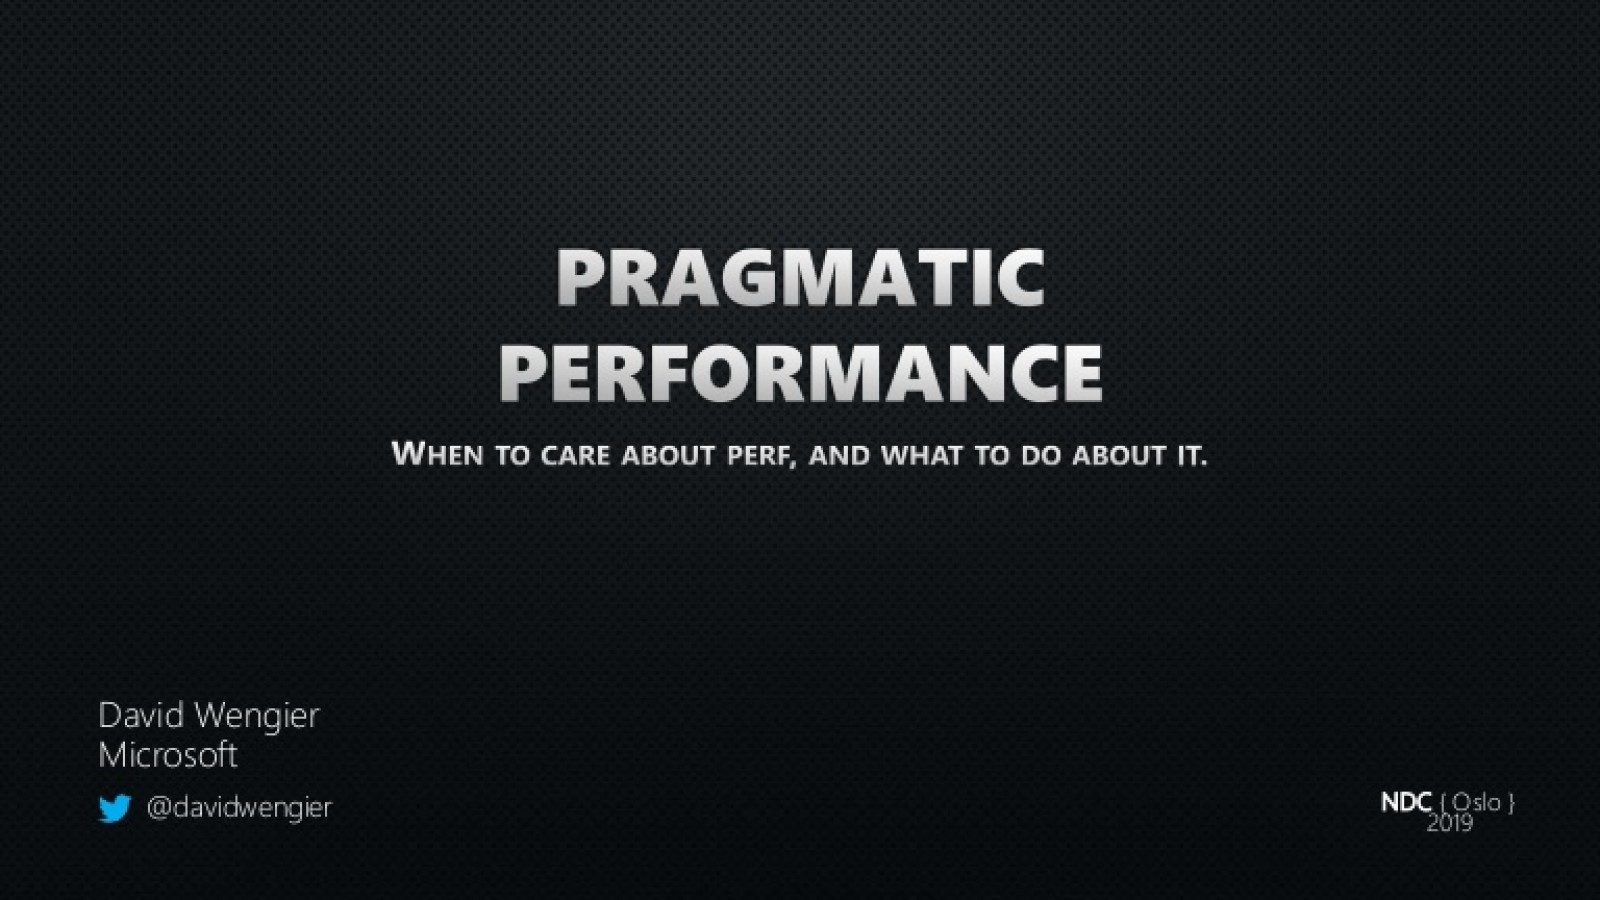 Pragmatic Performance: When to care about perf, and what to do about it